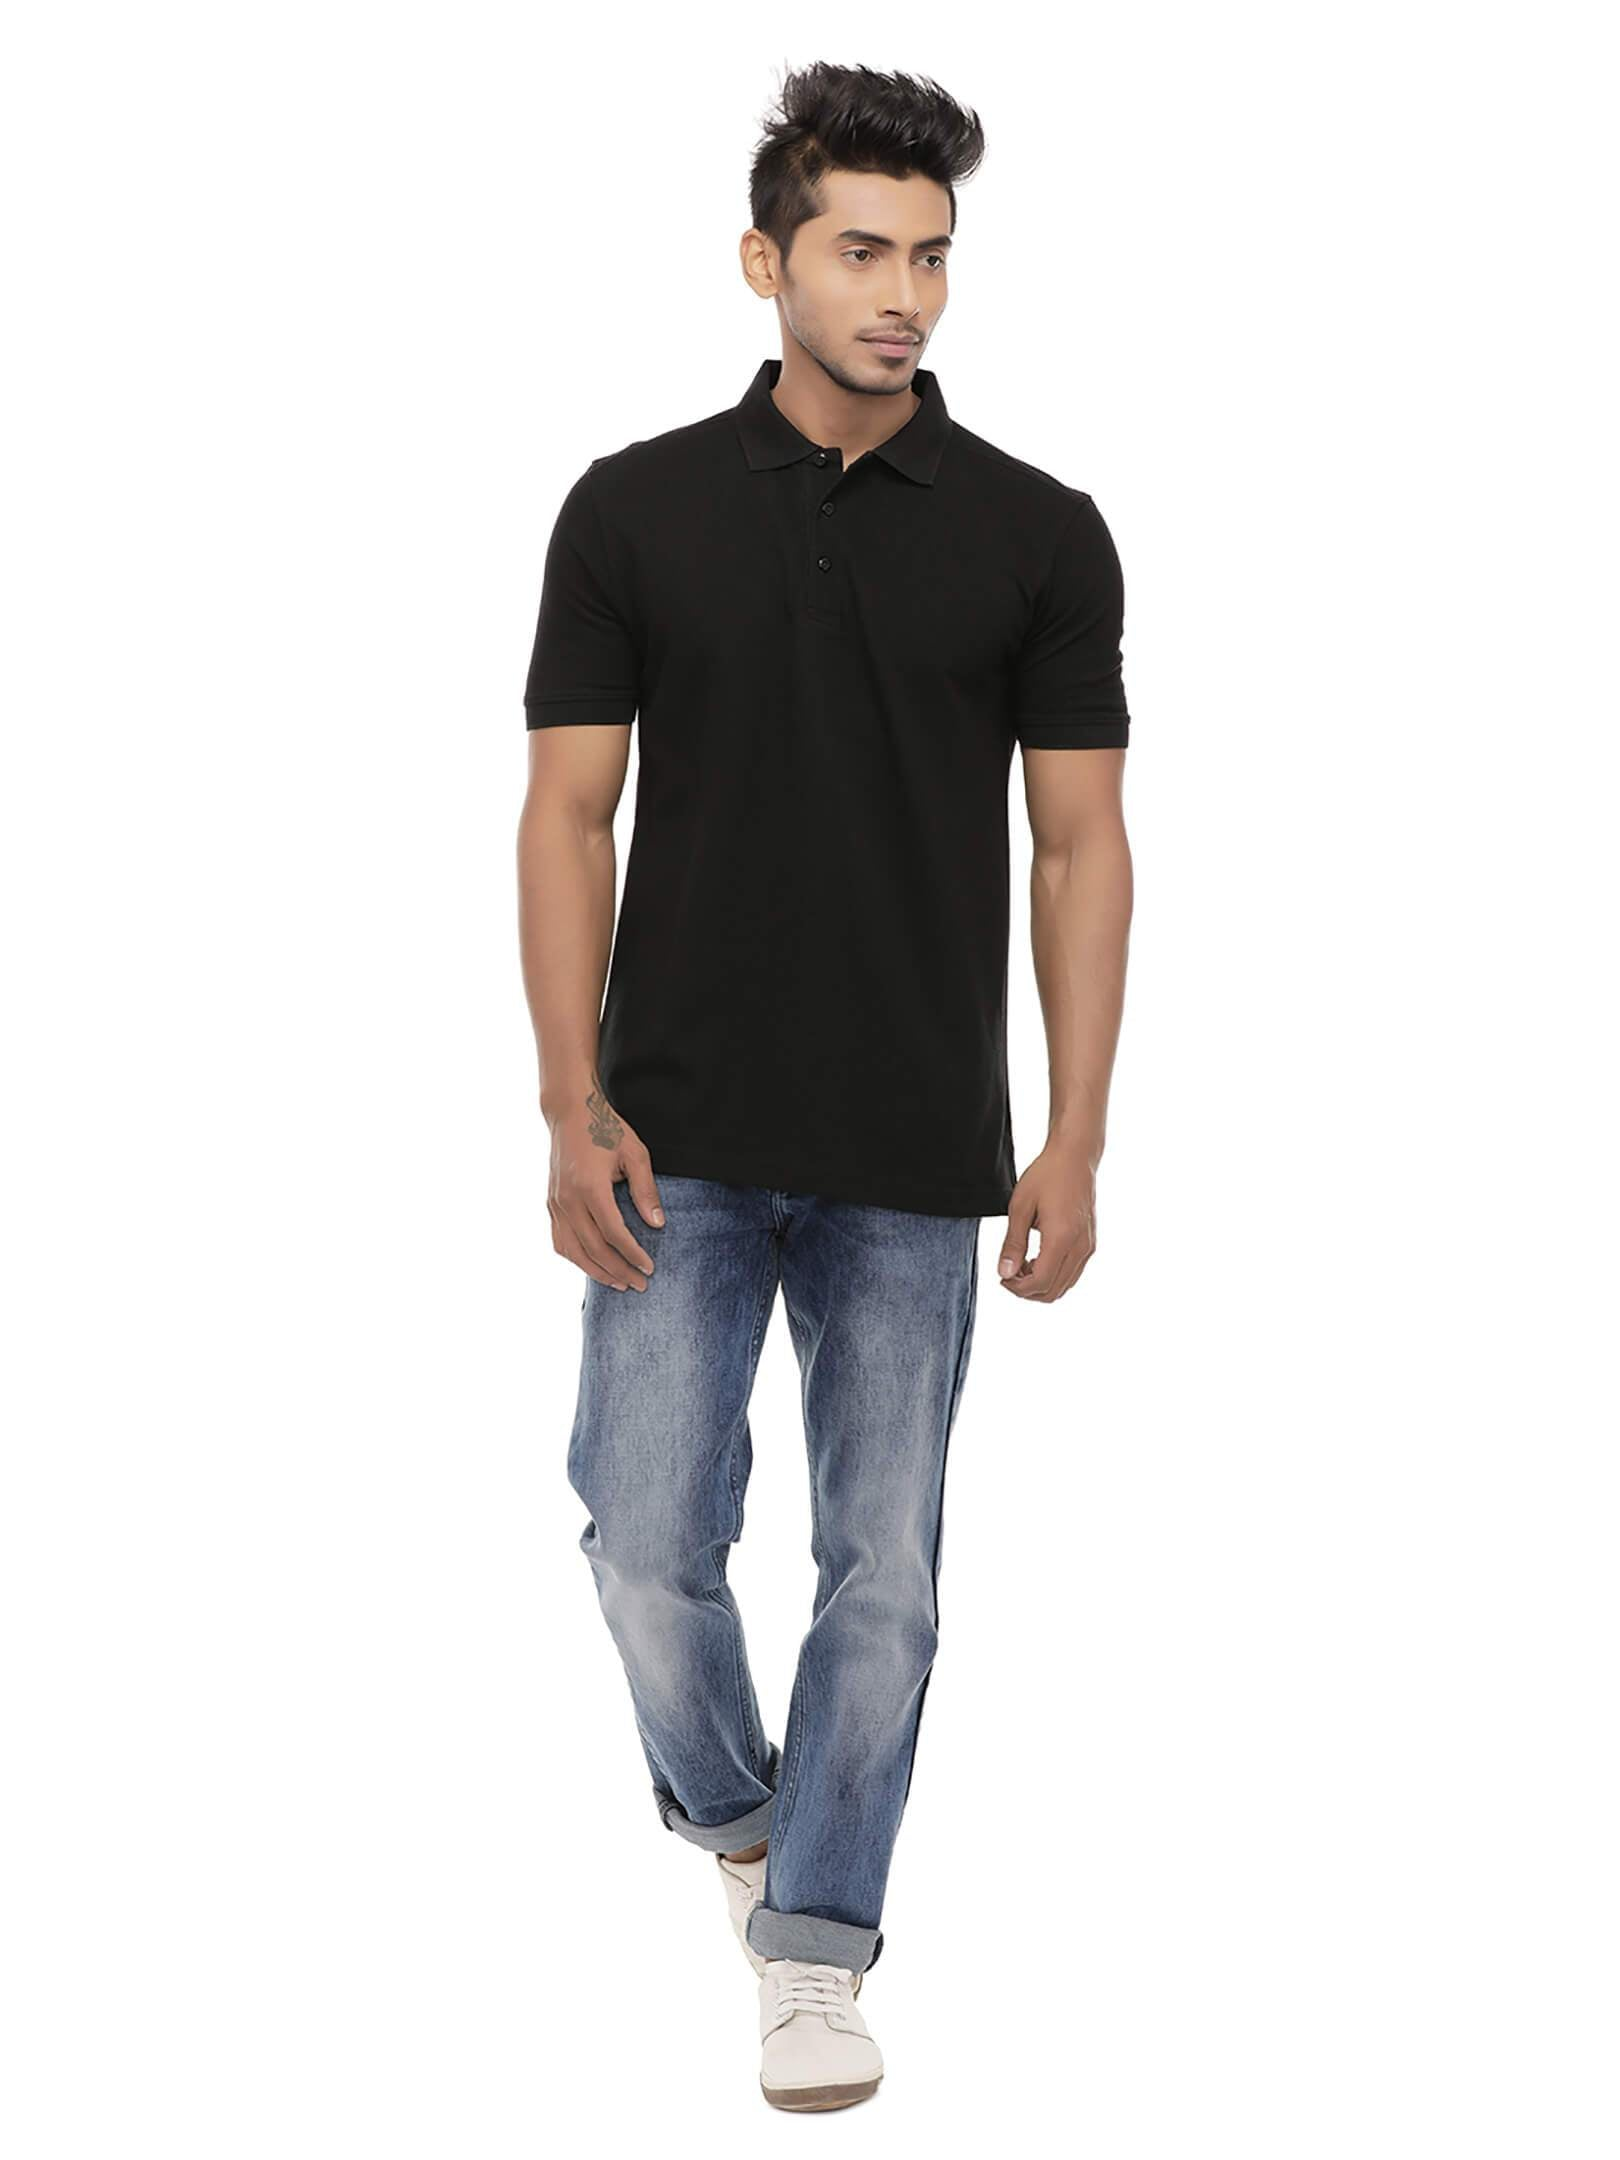 Amrak Men's Polo Collar T-Shirt - Plain Black